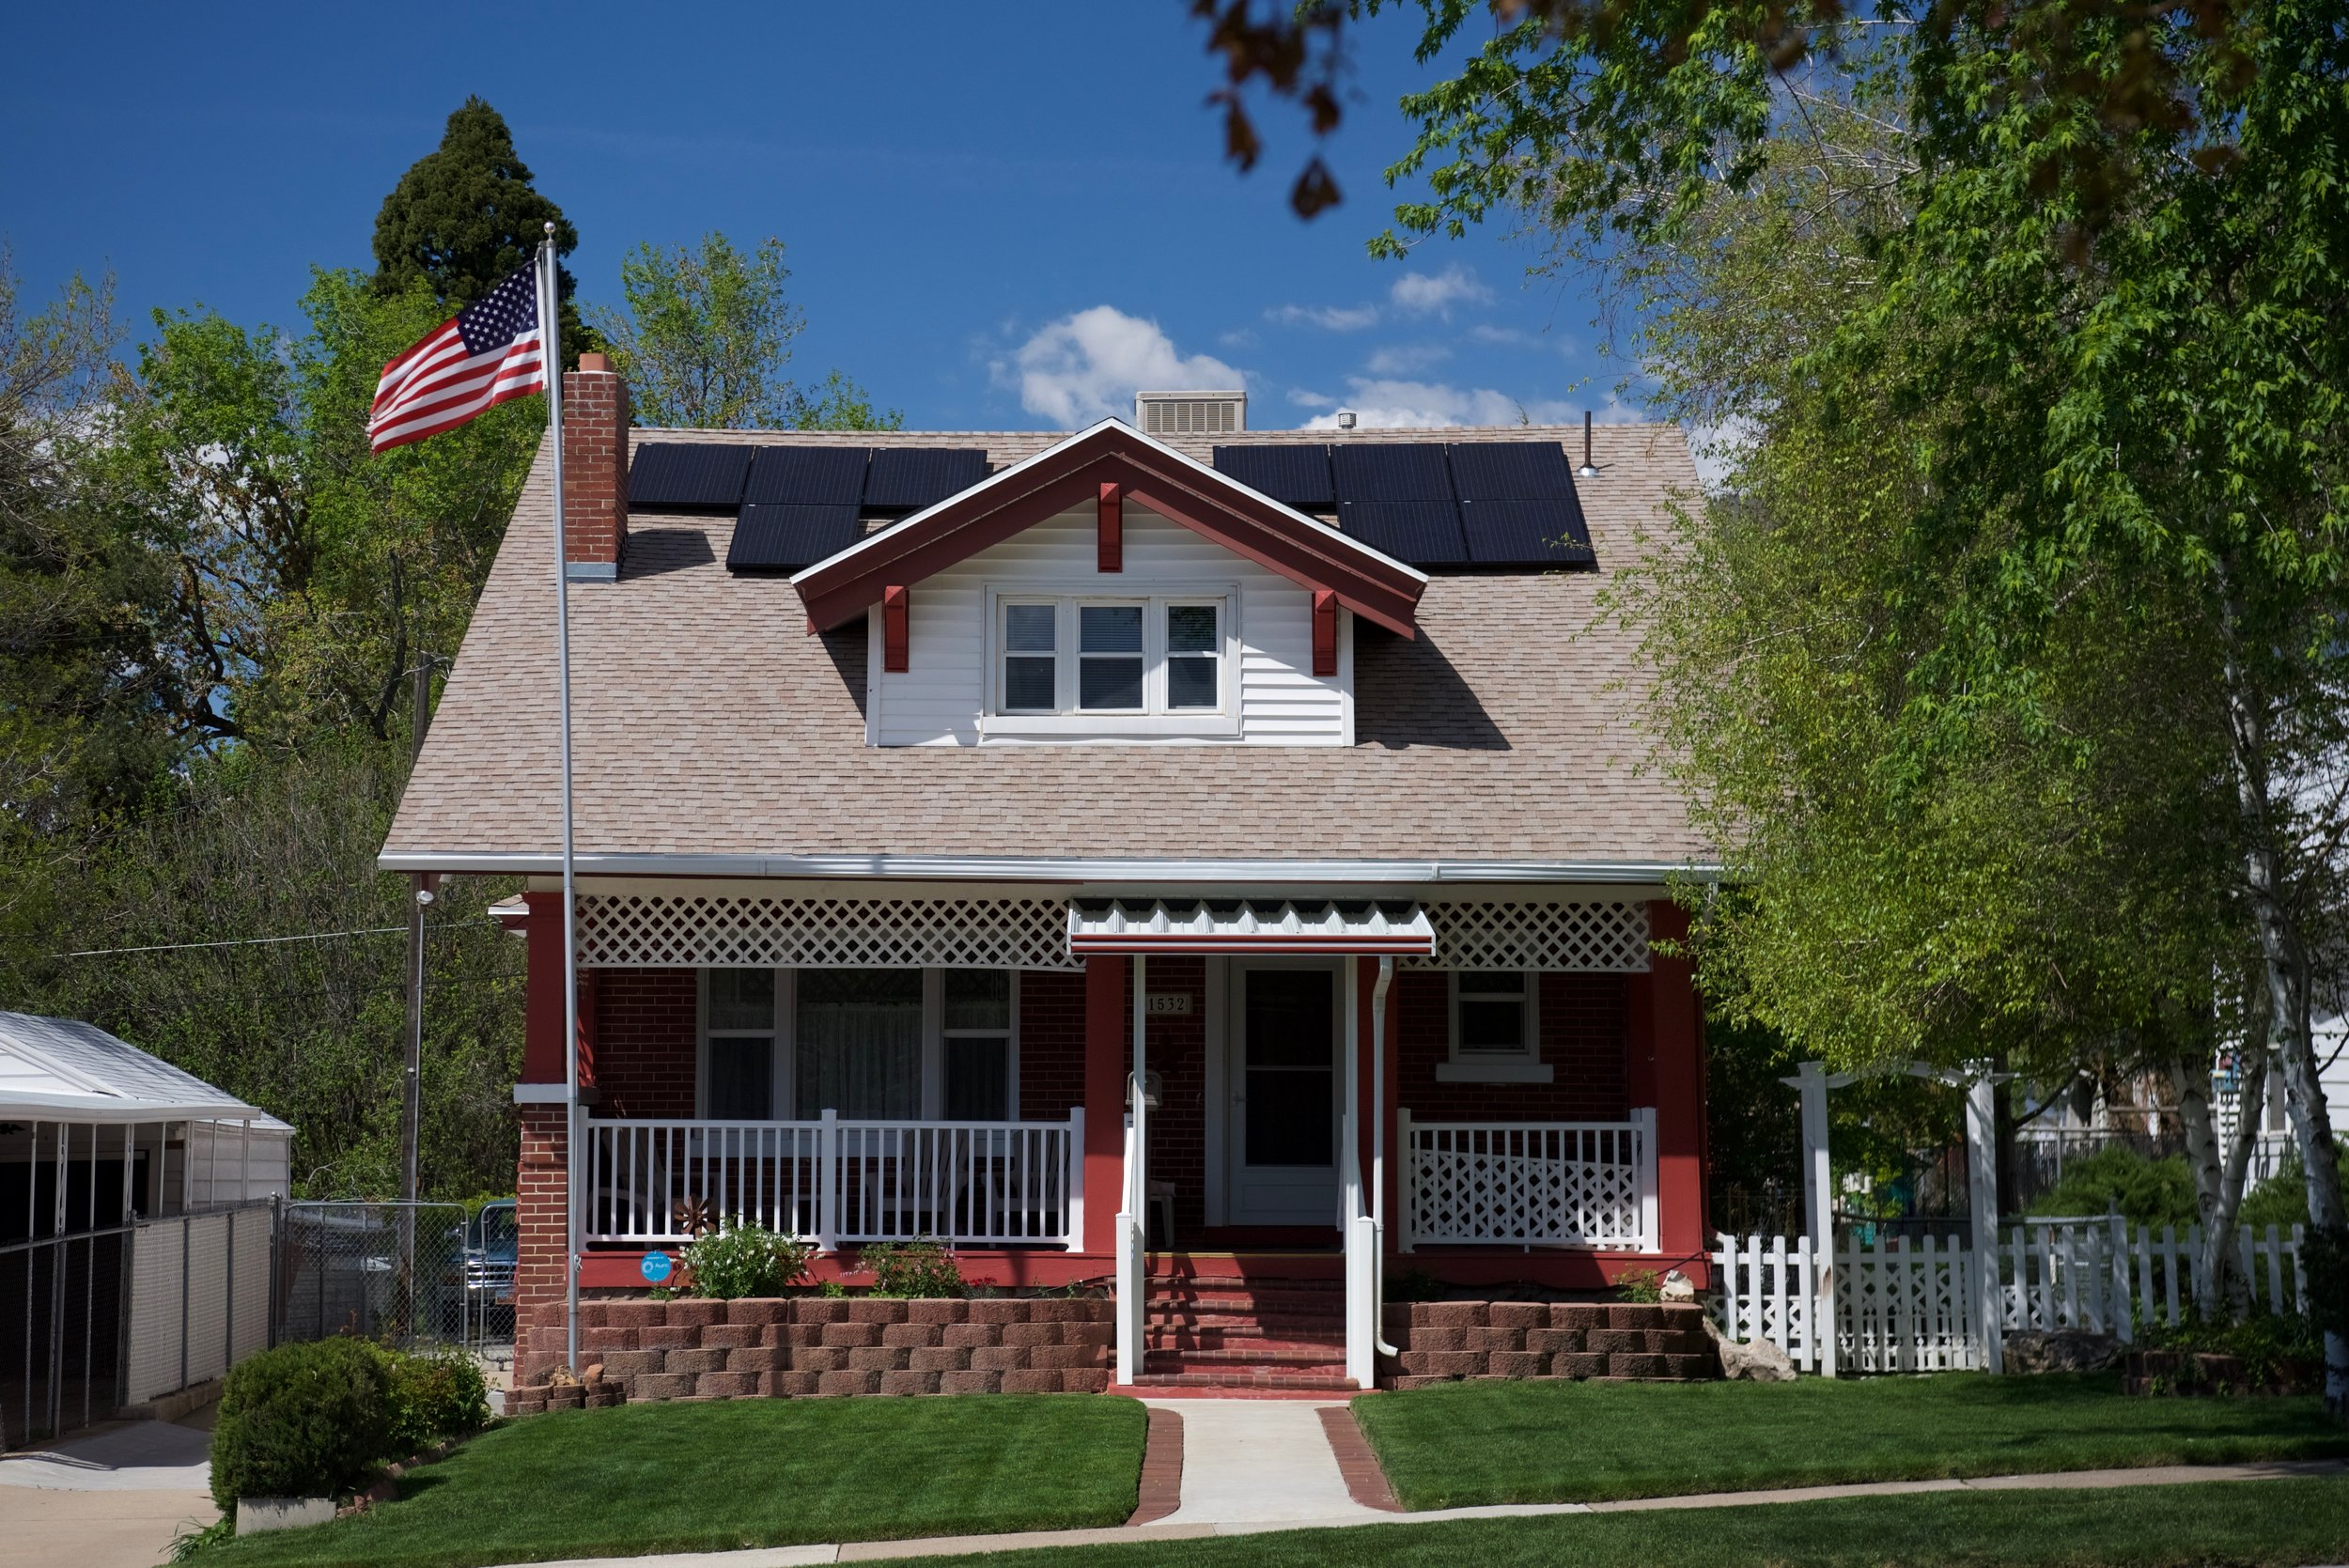 22 panels installed 6kW generated per month  $85.27 saved per month